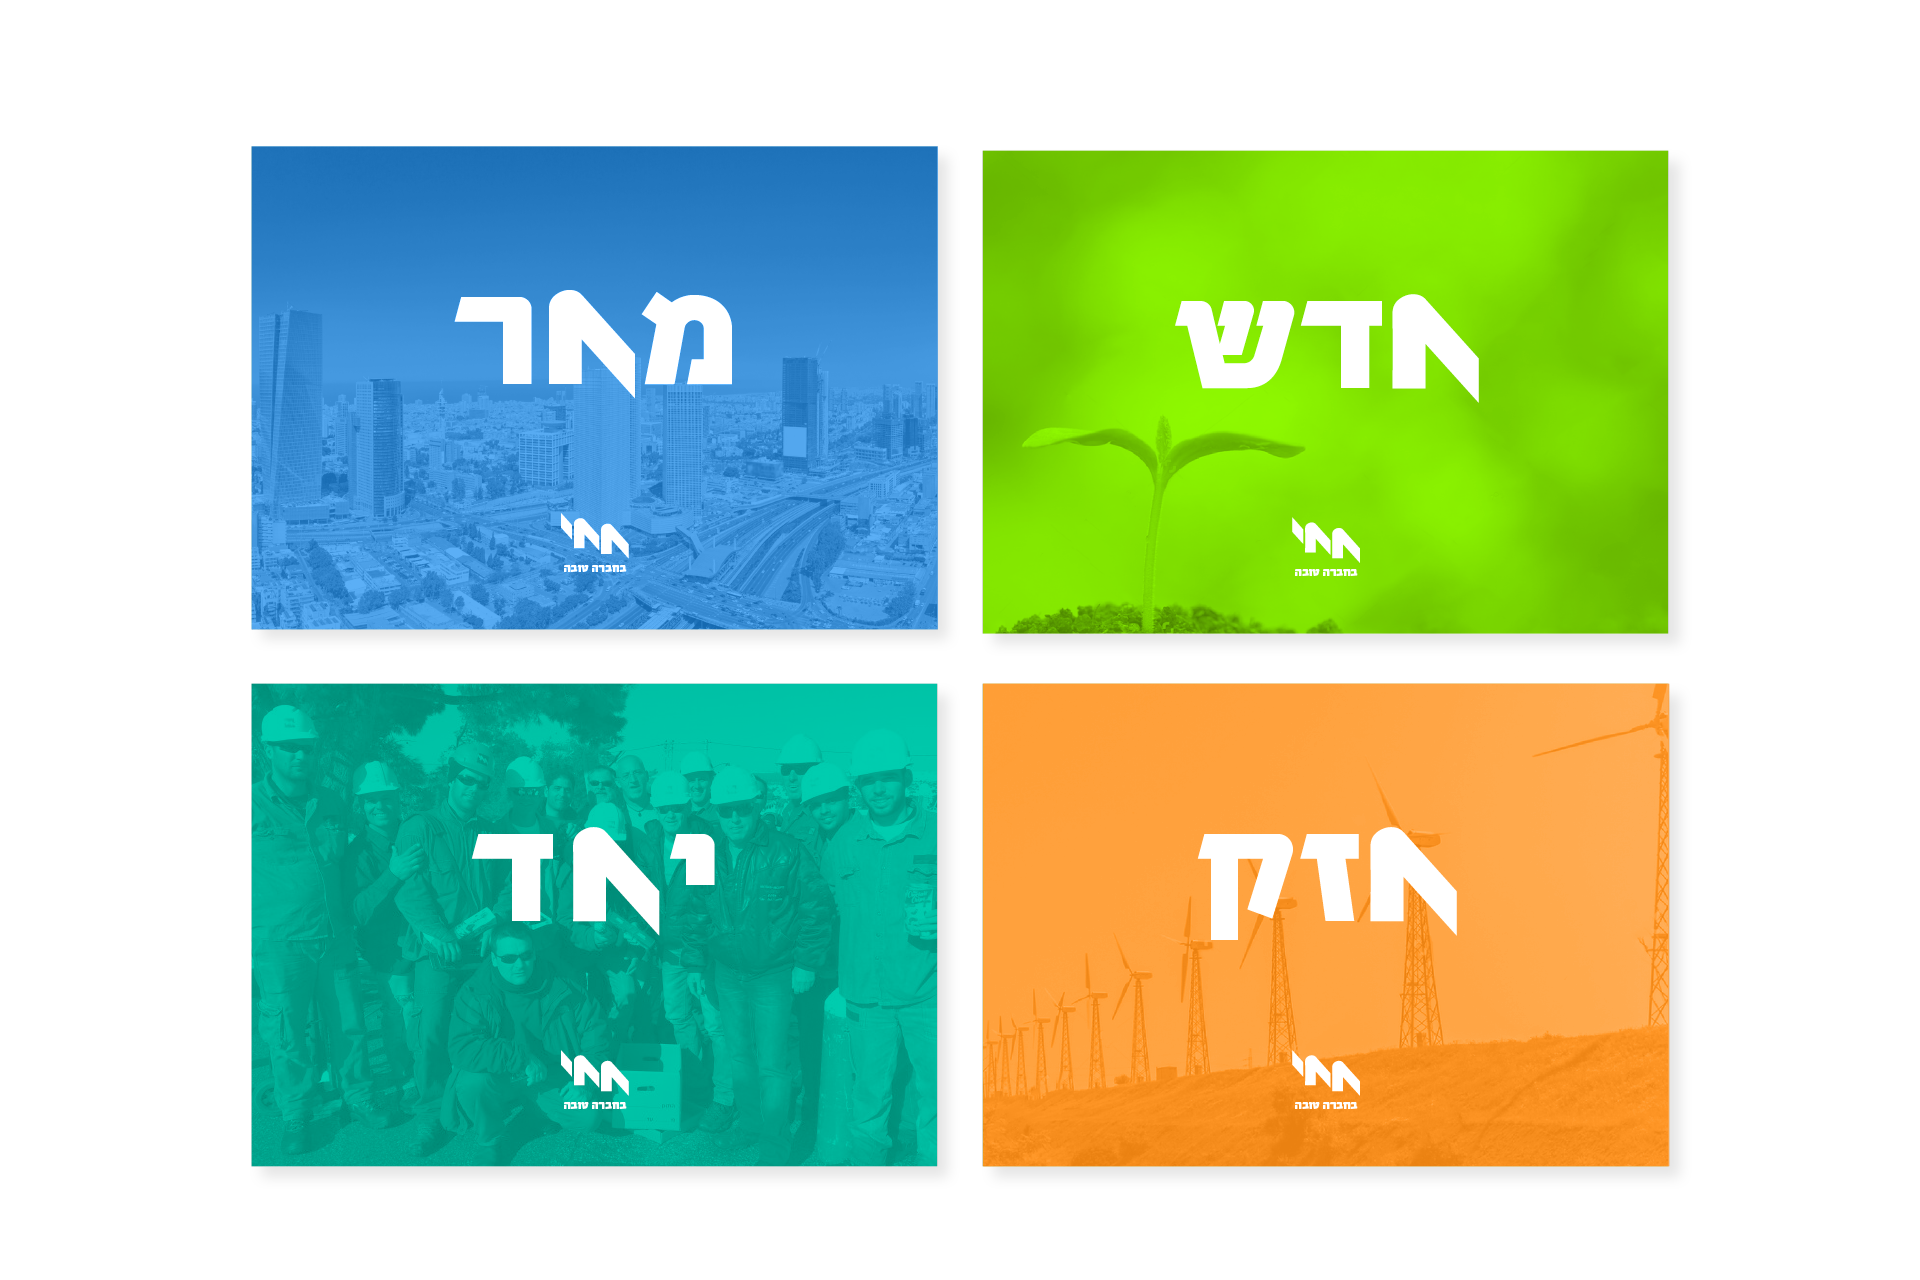 campaign 1 posters